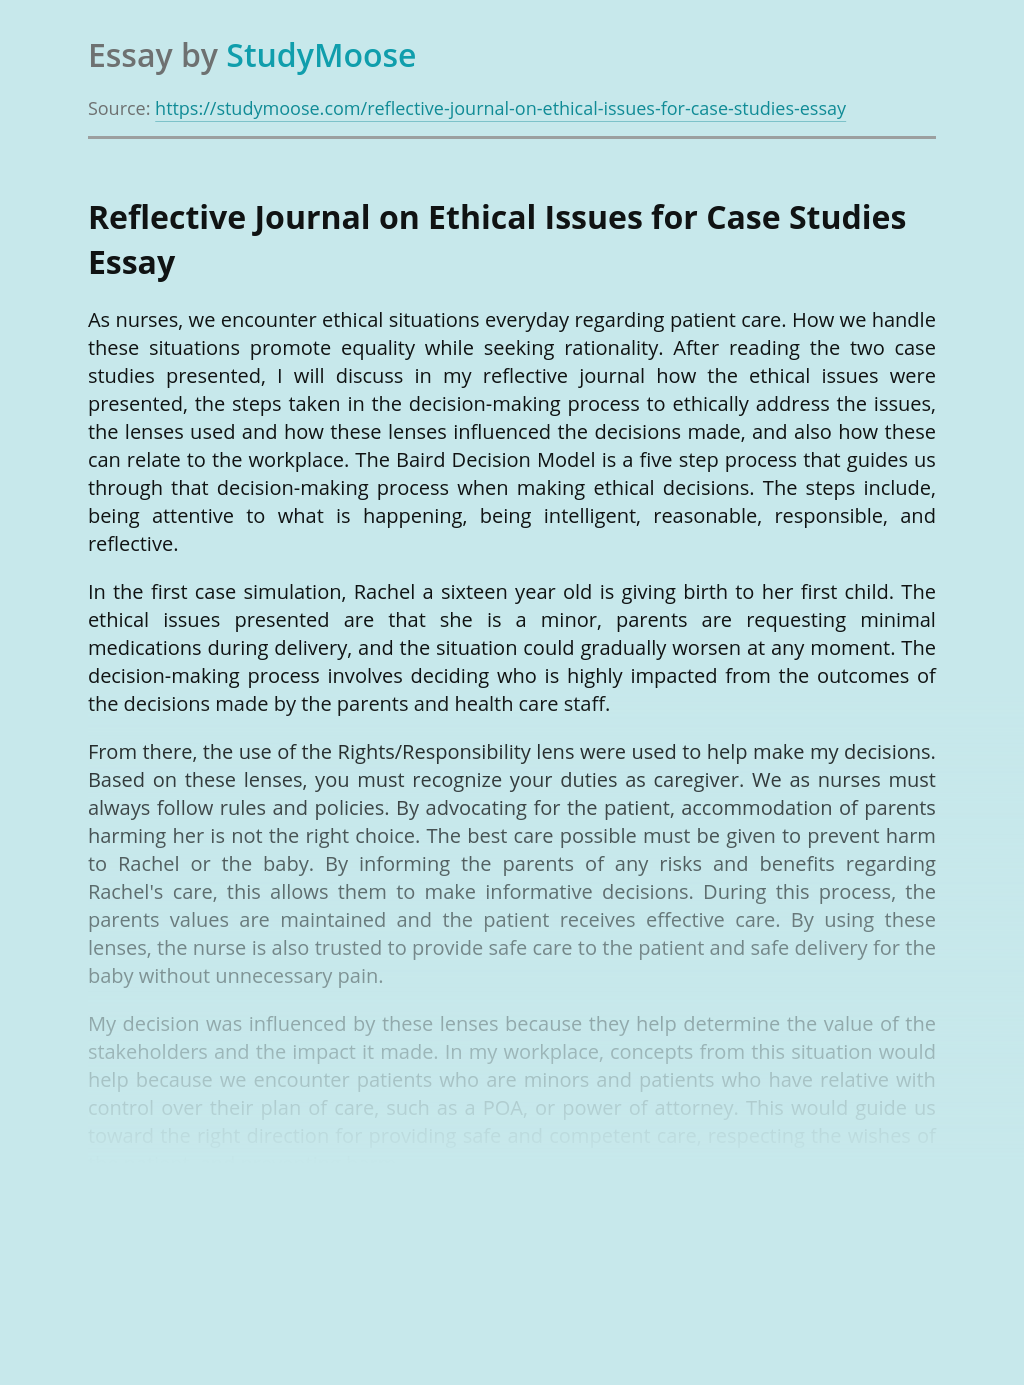 Reflective Journal on Ethical Issues for Case Studies